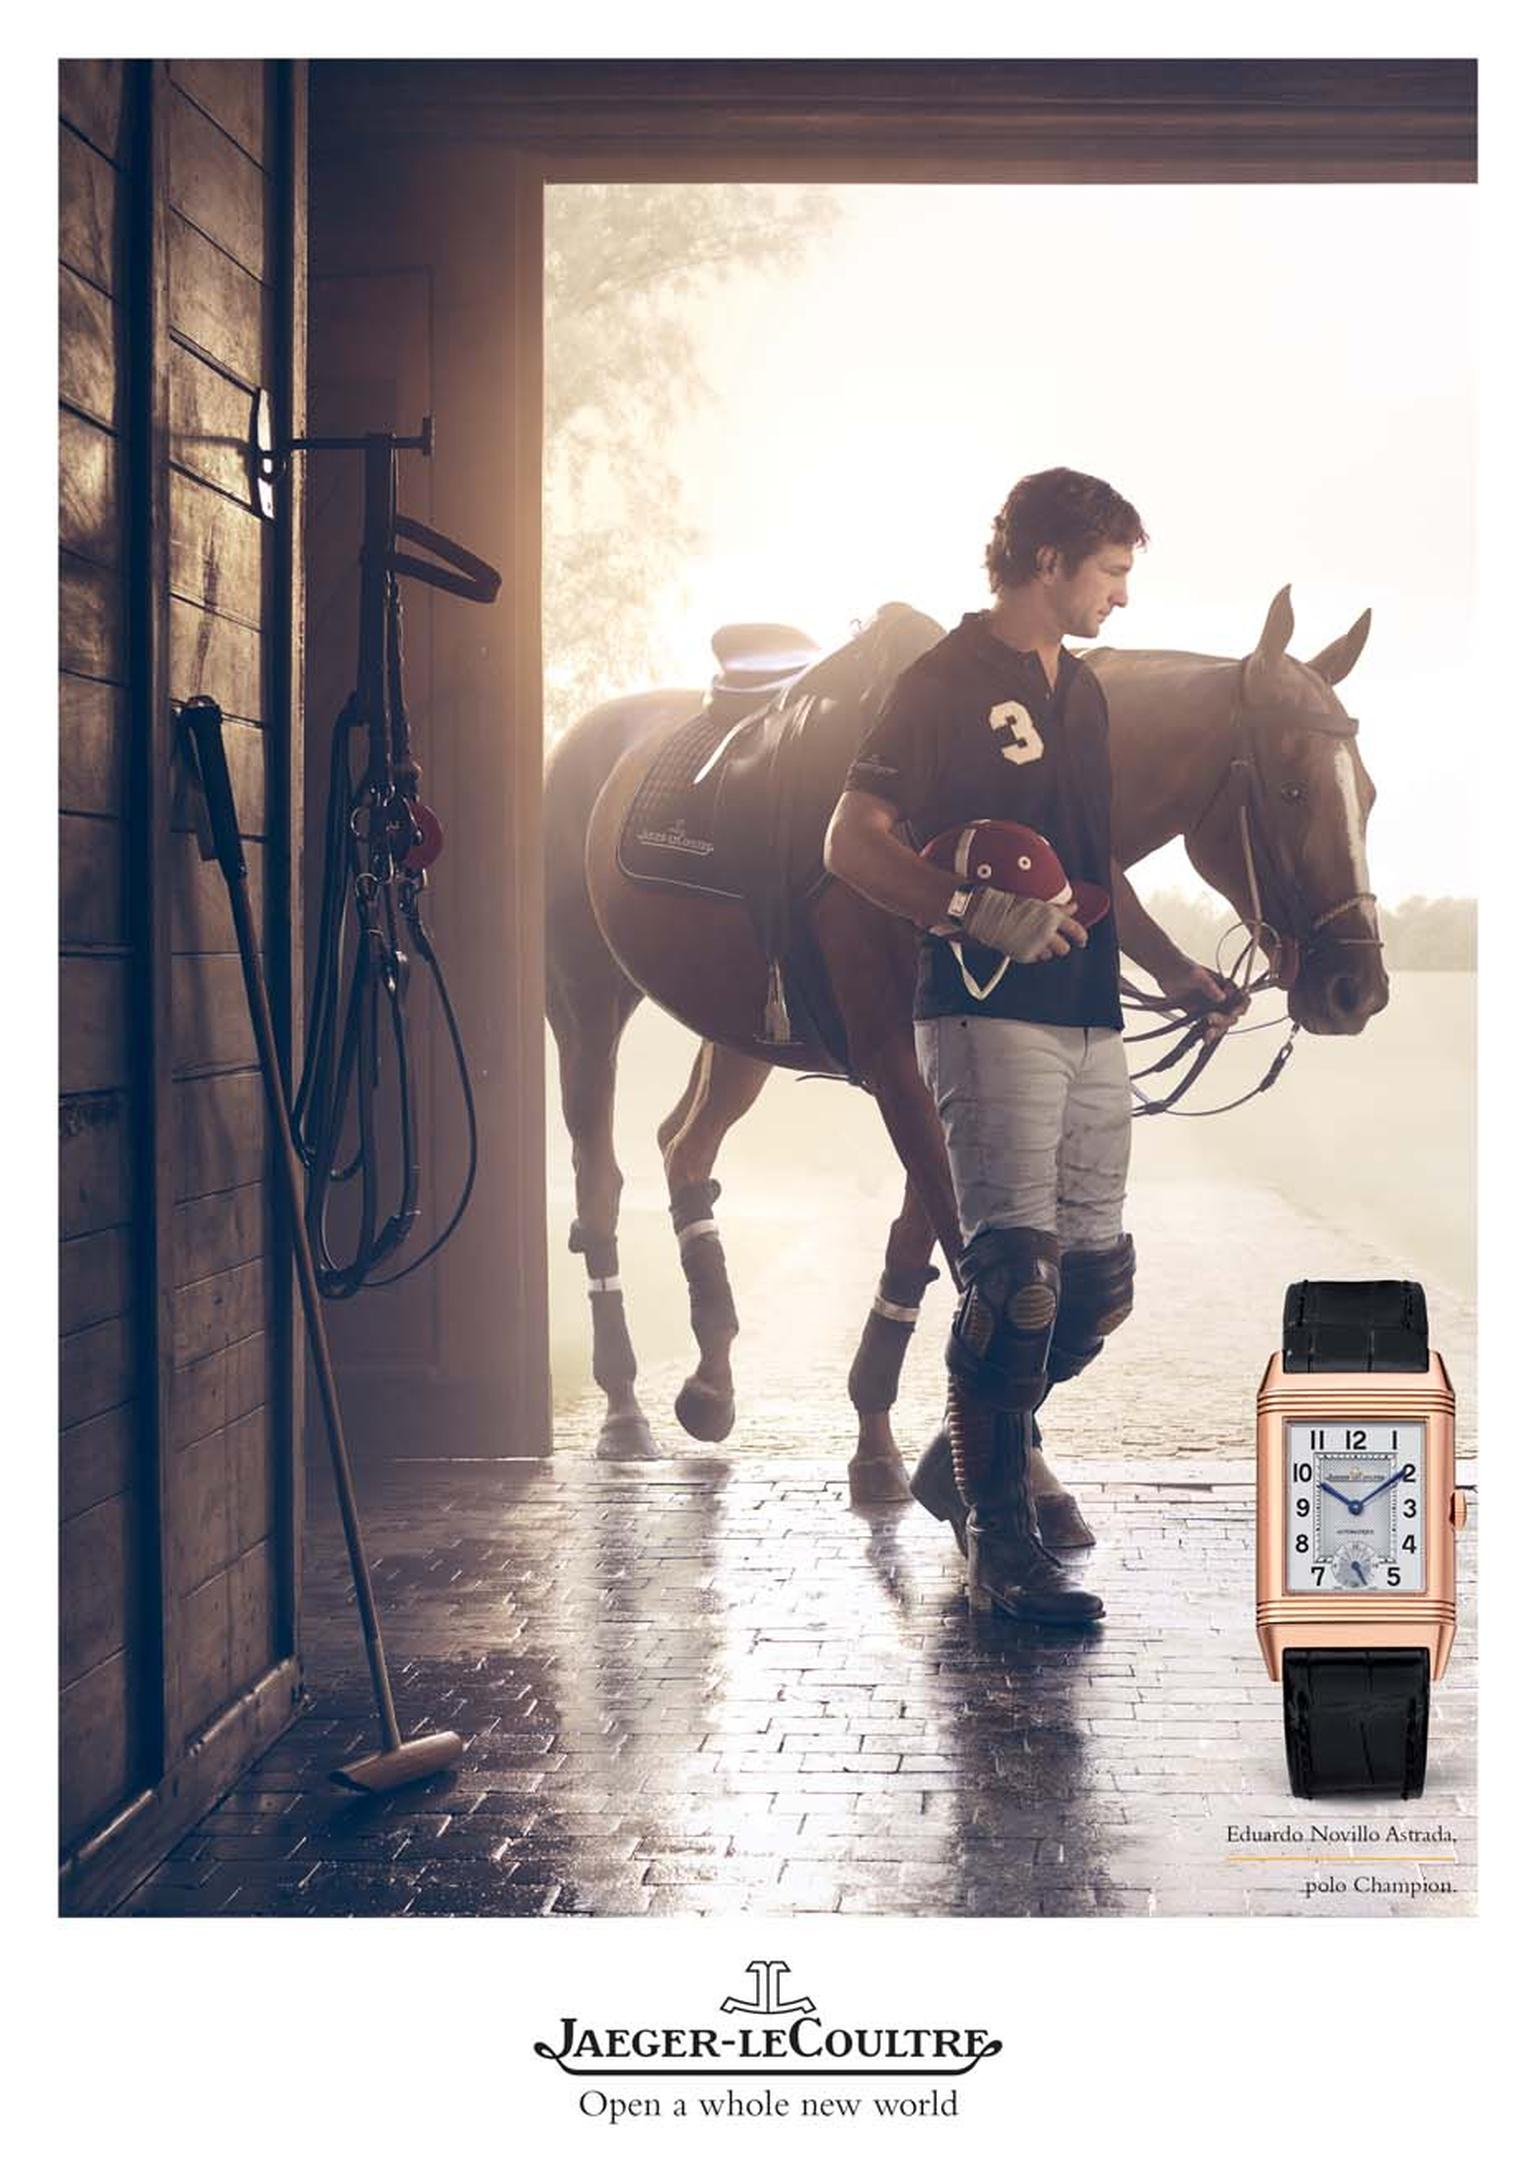 Moments in time are captured on camera in the new Jaeger-LeCoultre advertising campaign, including Argentinian Polo player Eduardo Novillo Astrada leading his horse back into the stables following a match.